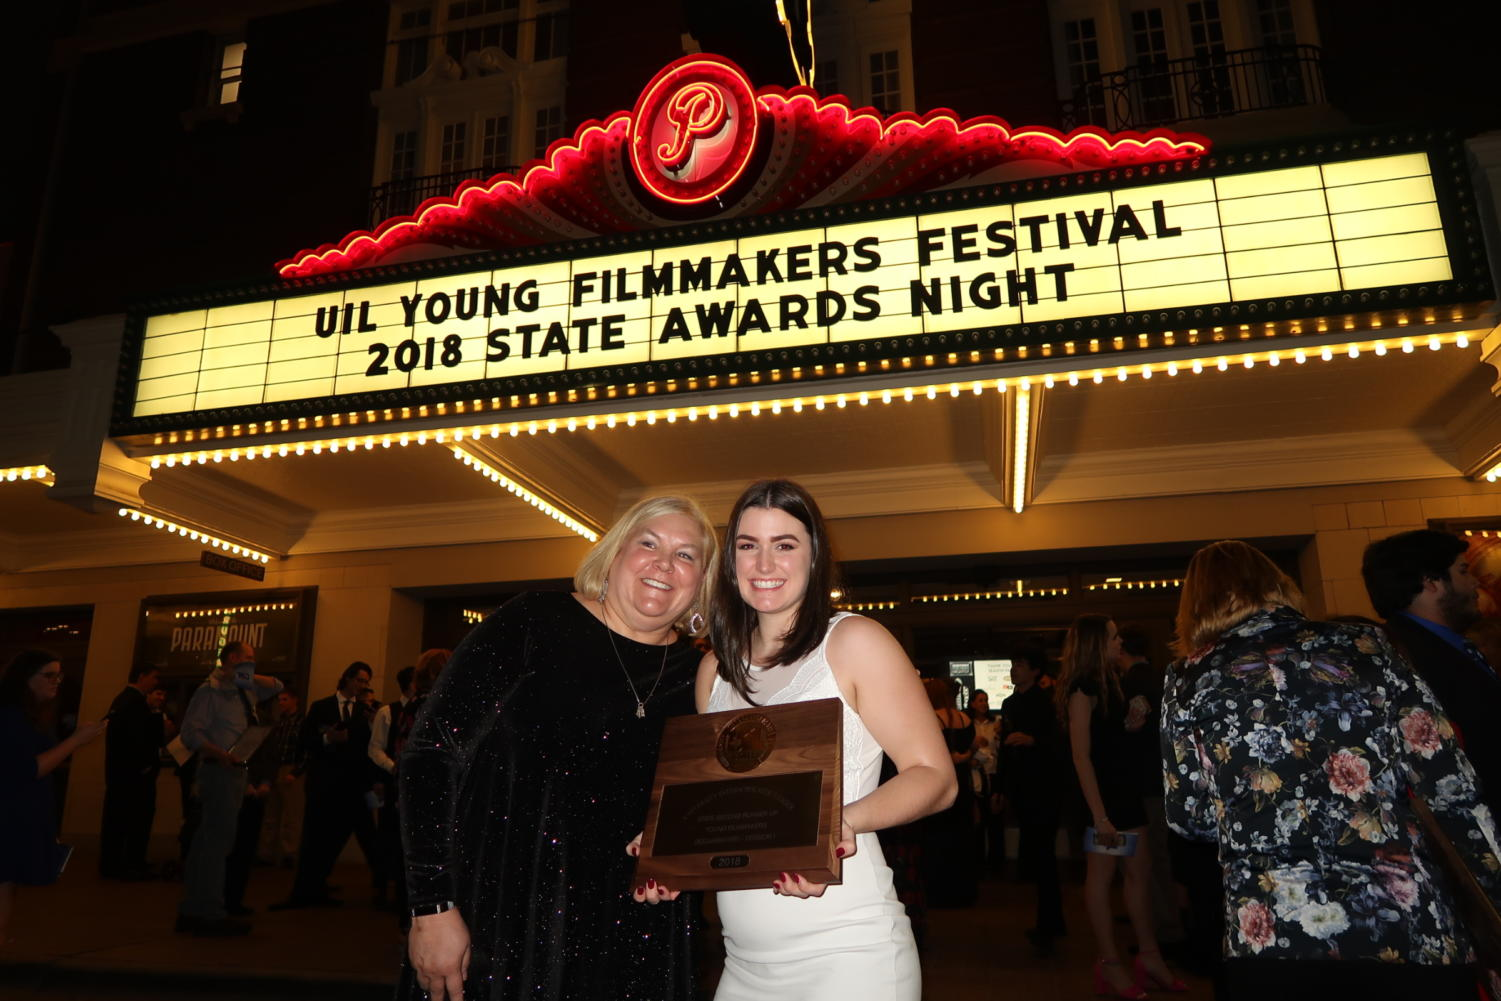 Junior Lauren Landrum holds up her bronze UIL state plaque at the UIL Young Filmmakers Festival in Austin, TX on Feb. 28, 2018. (Lauren Landrum / The Talon News)